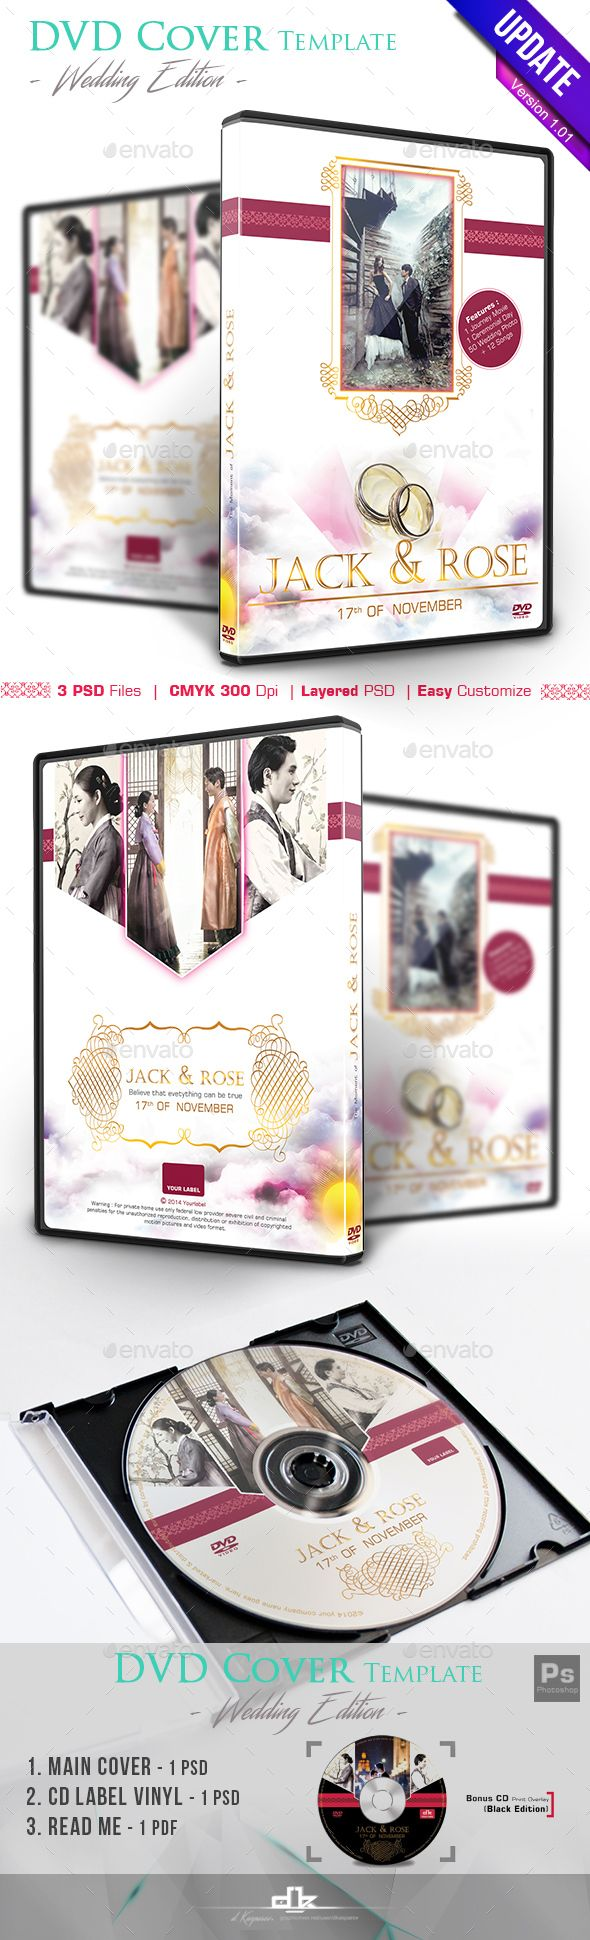 Wedding dvd cover pronofoot35fo Choice Image